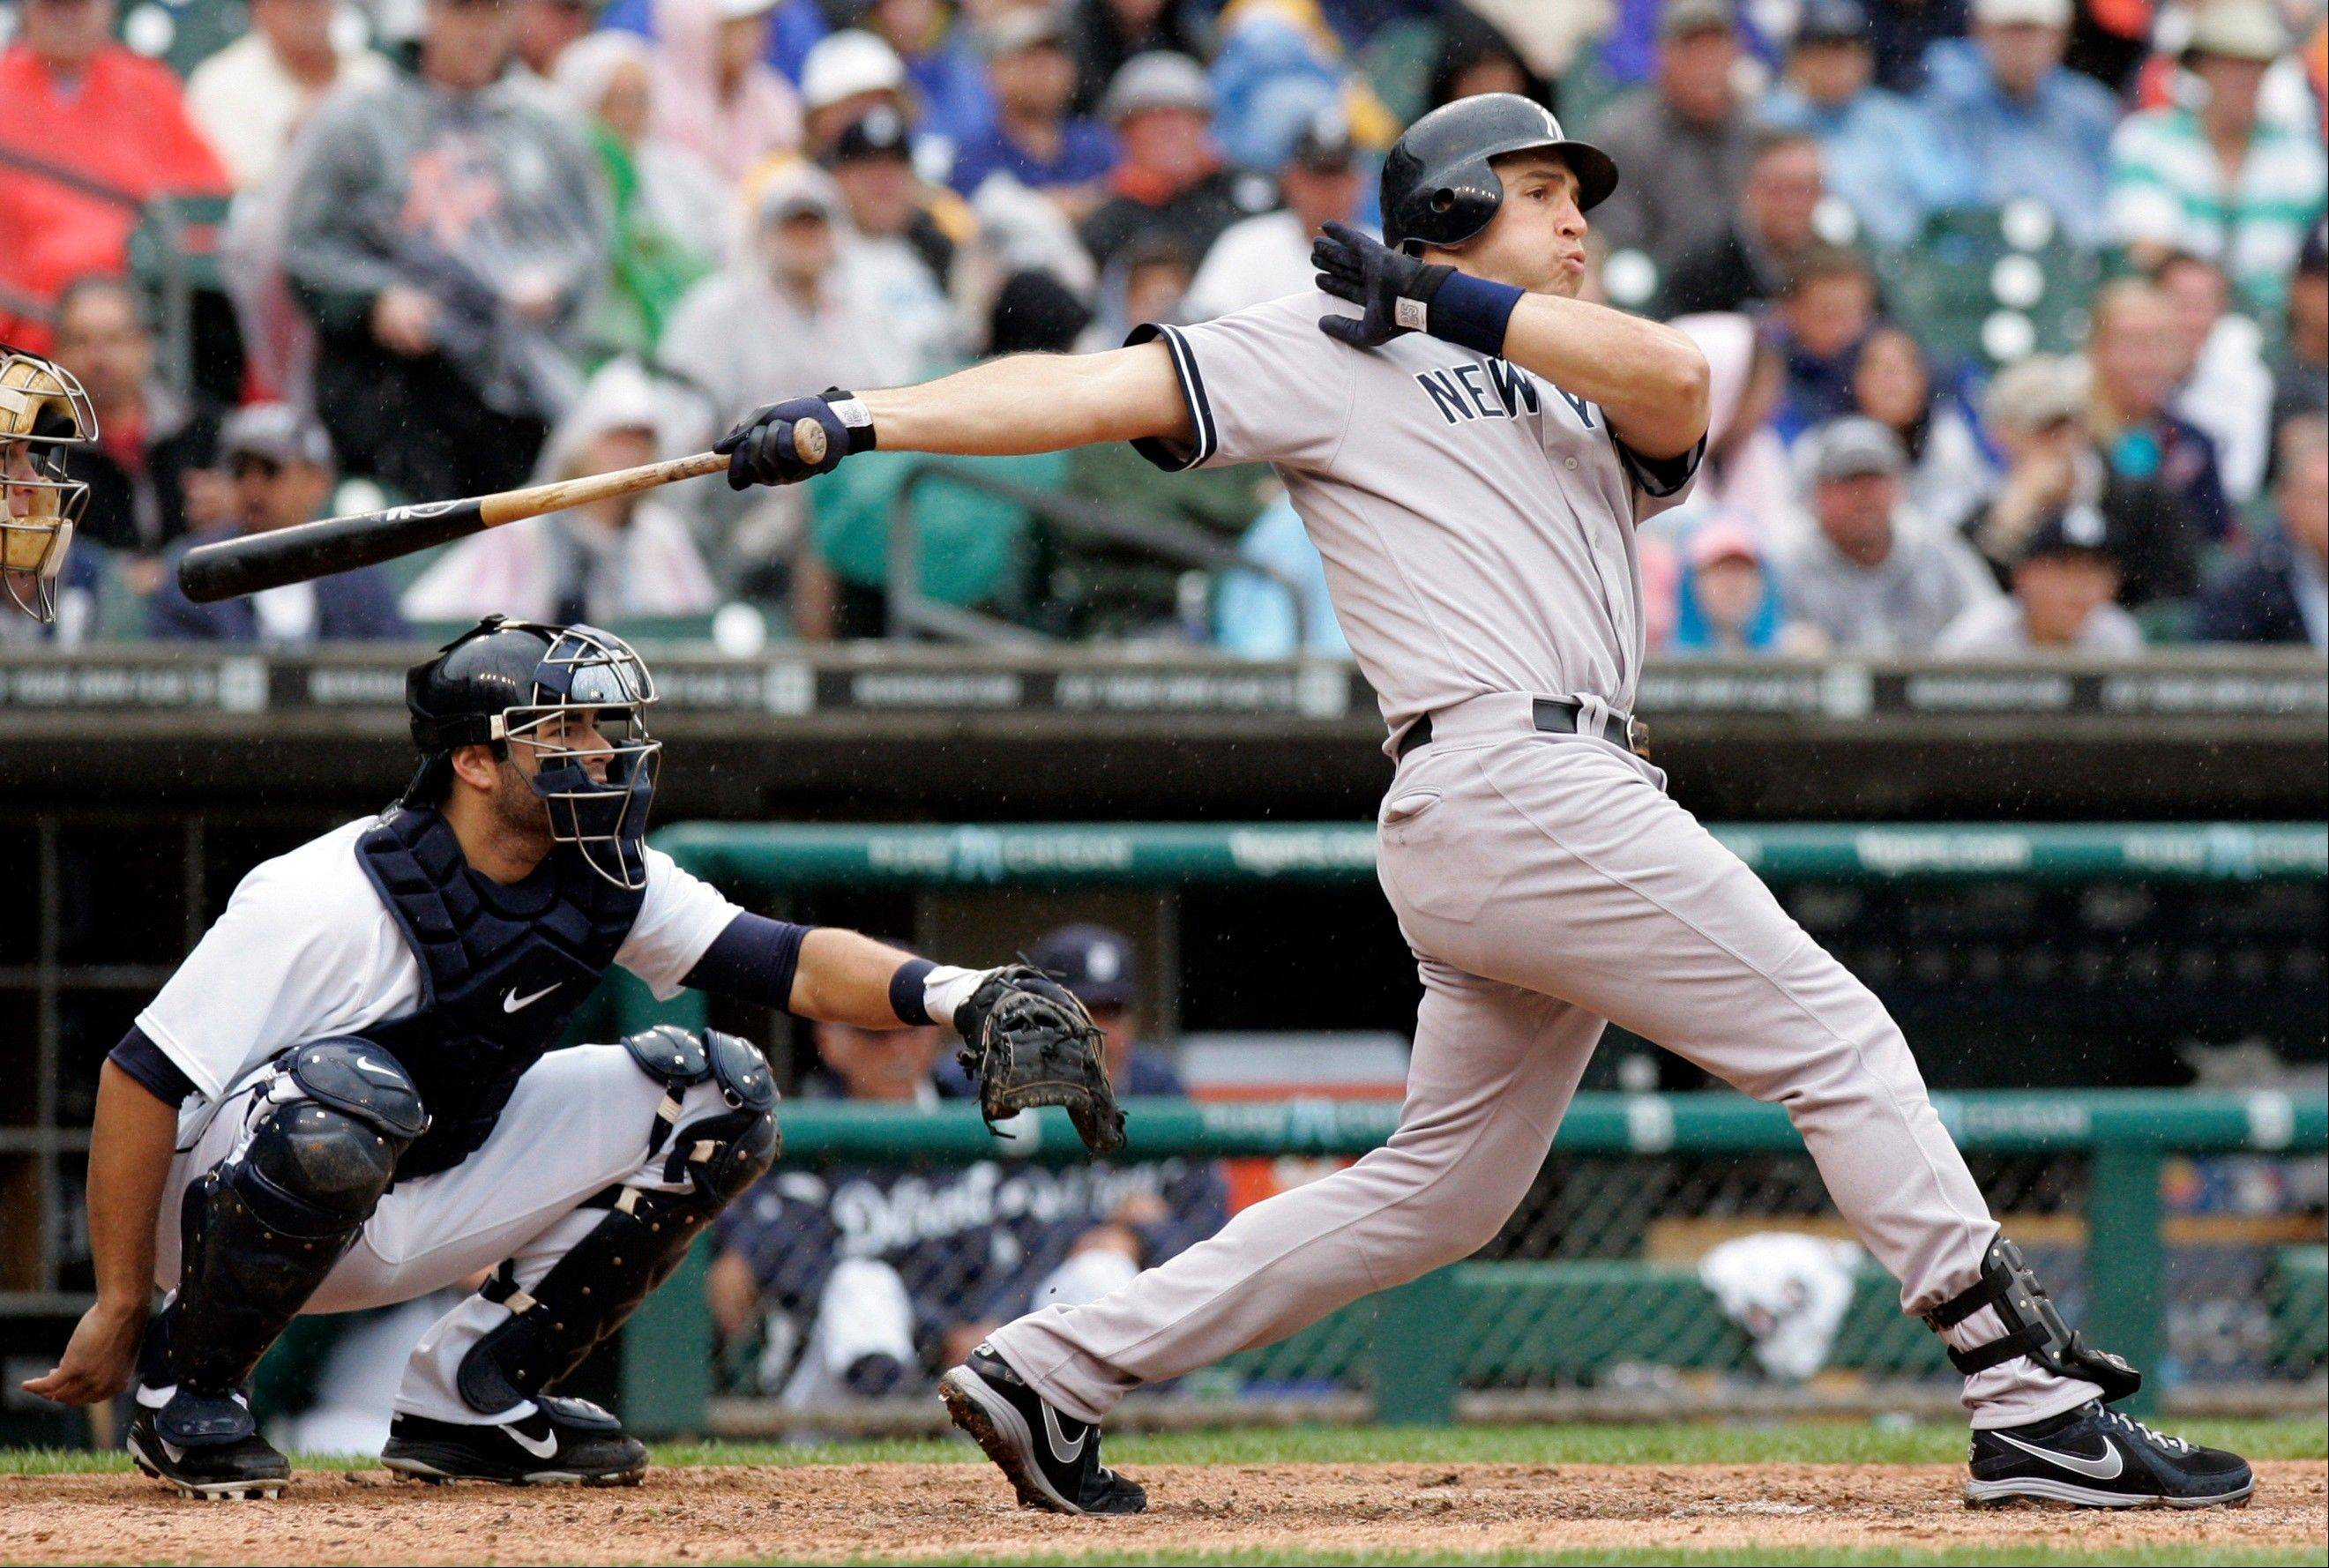 The Yankees' Mark Teixeira hits a solo home run in the eighth inning Thursday in Detroit.